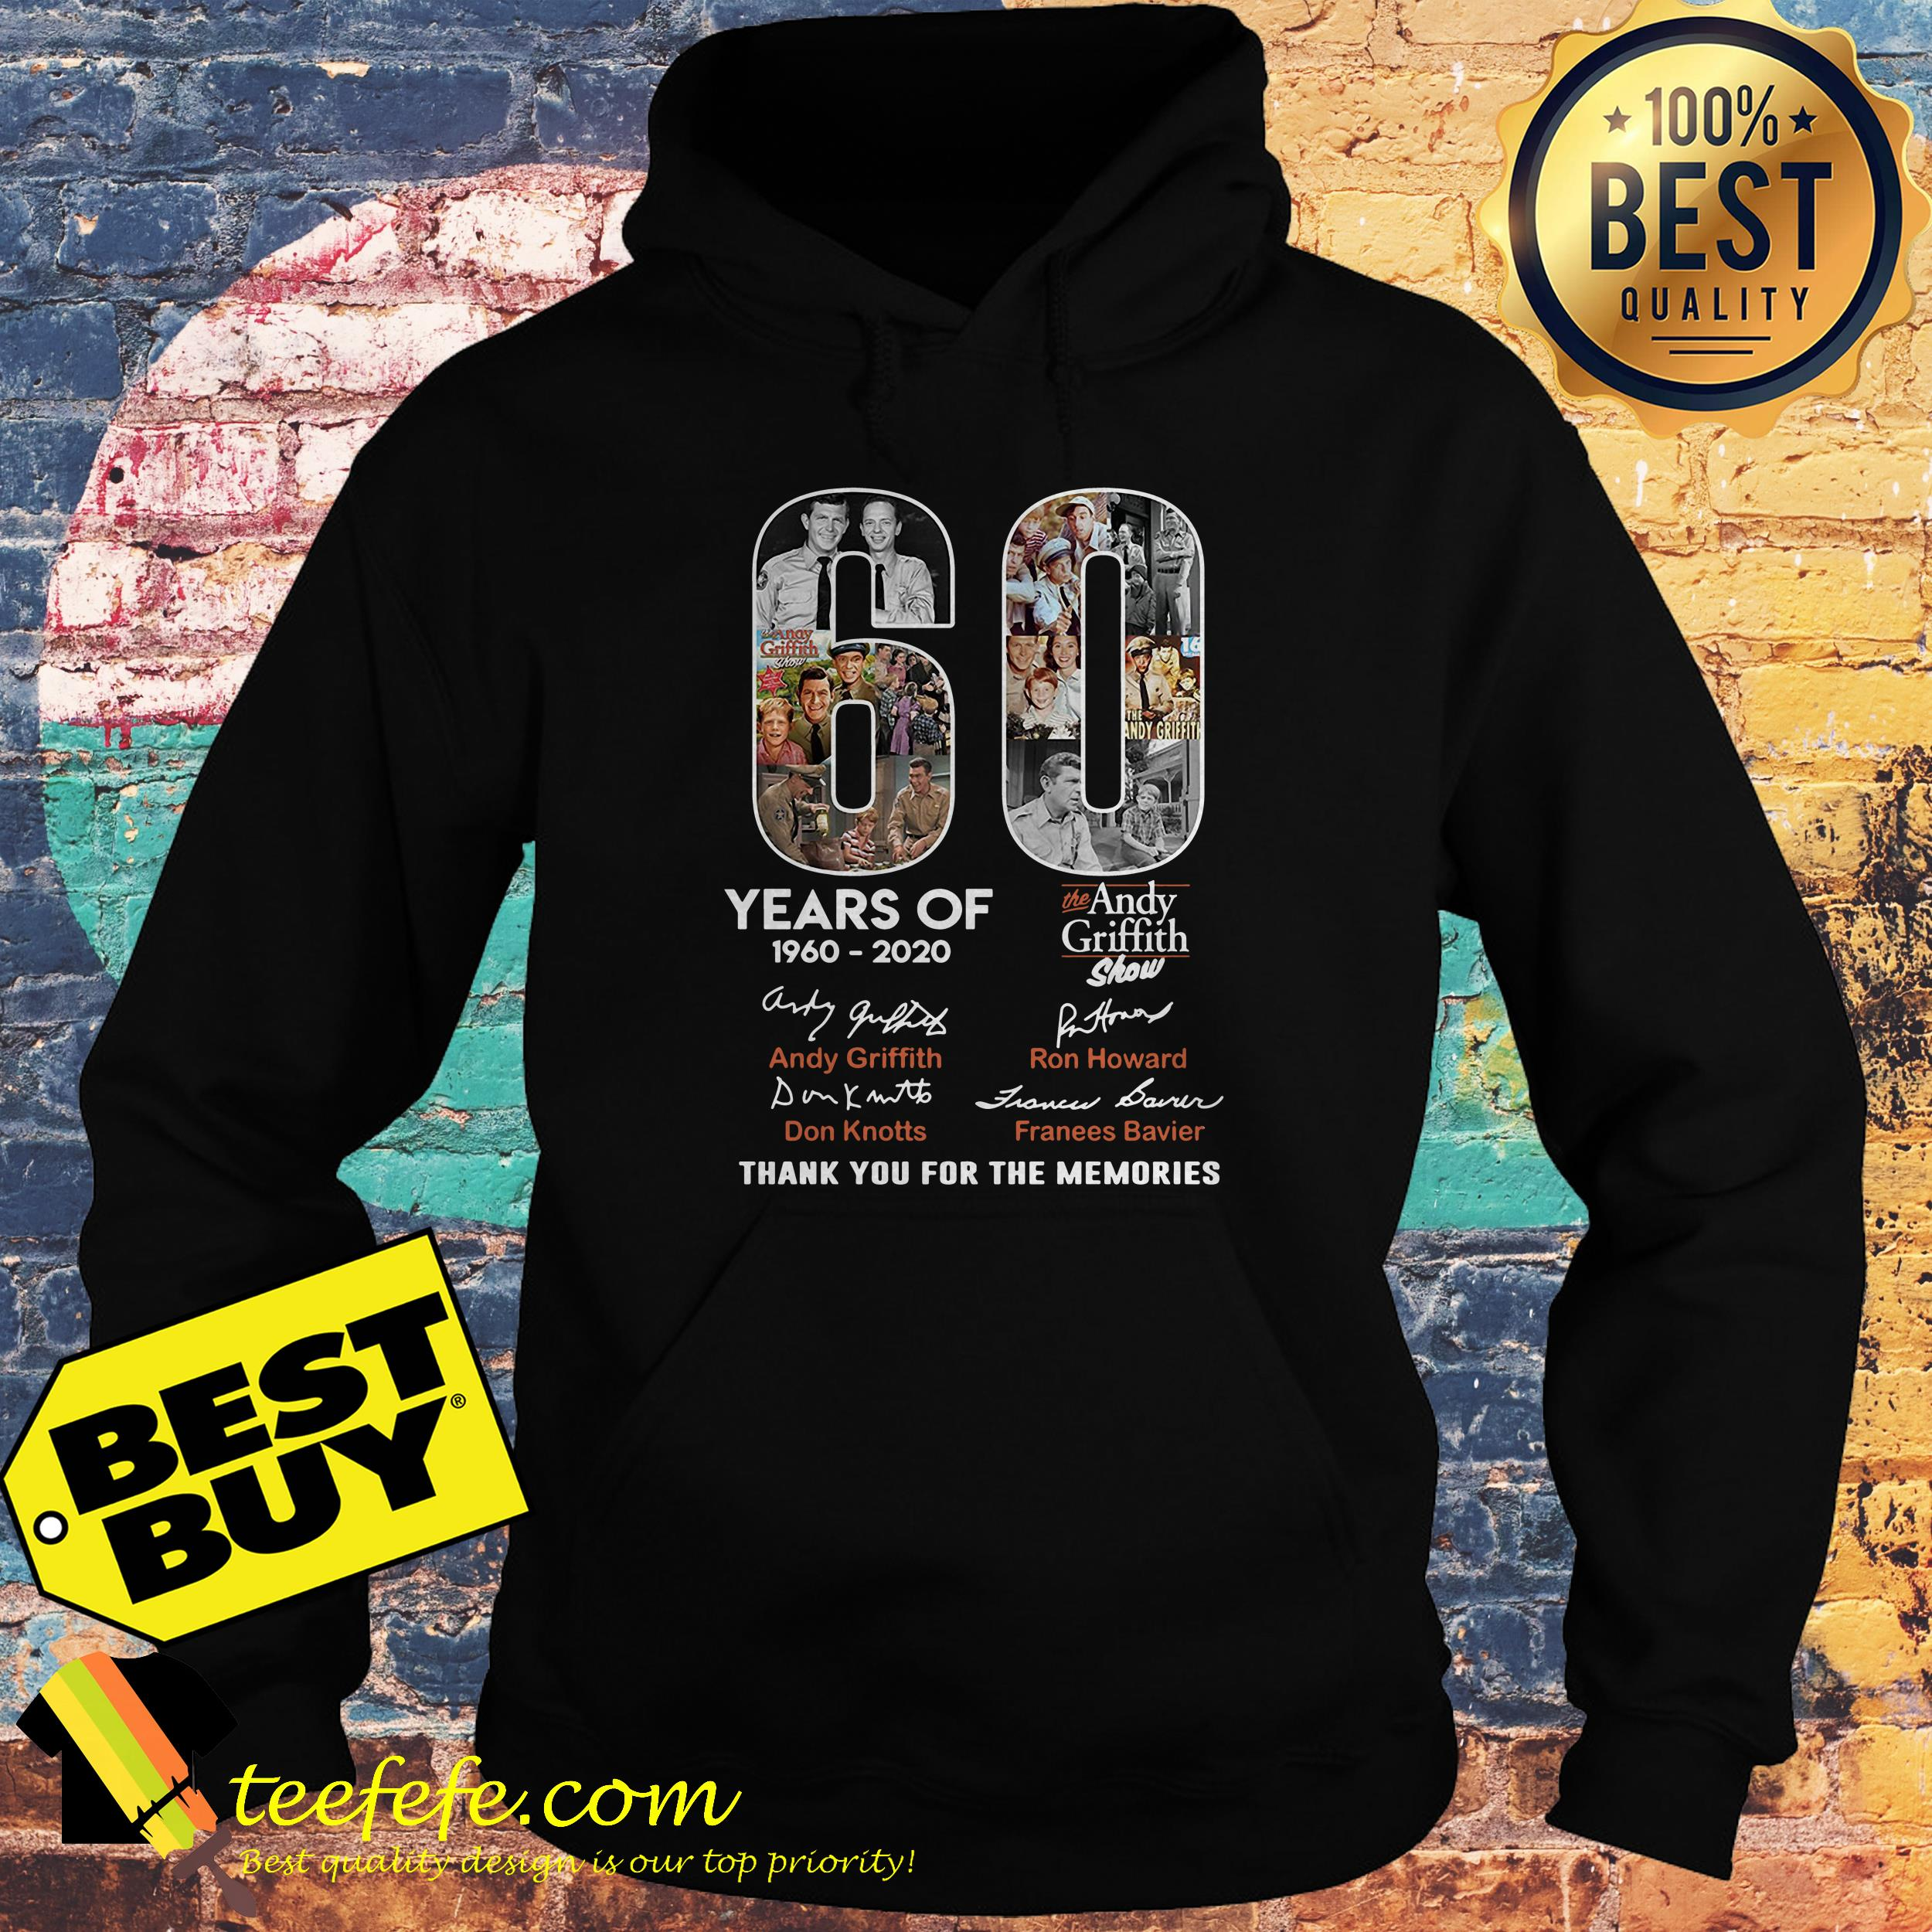 60 Years of the Andy Griffith Show 1960-2020 thank you for the memories hoodie